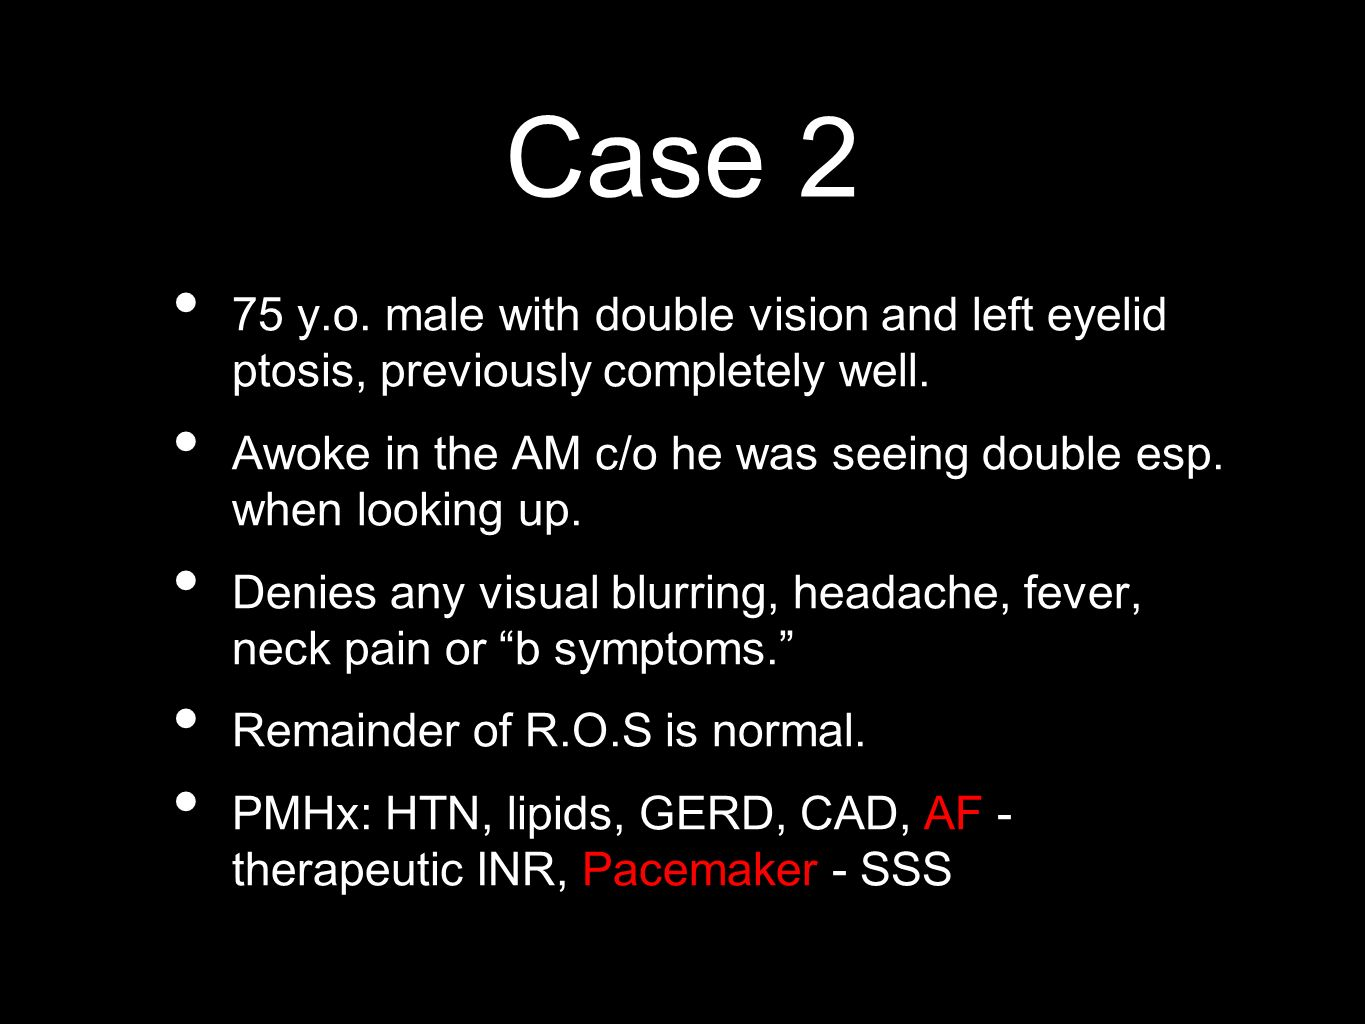 Case 2 75 y.o. male with double vision and left eyelid ptosis, previously completely well. Awoke in the AM c/o he was seeing double esp. when looking